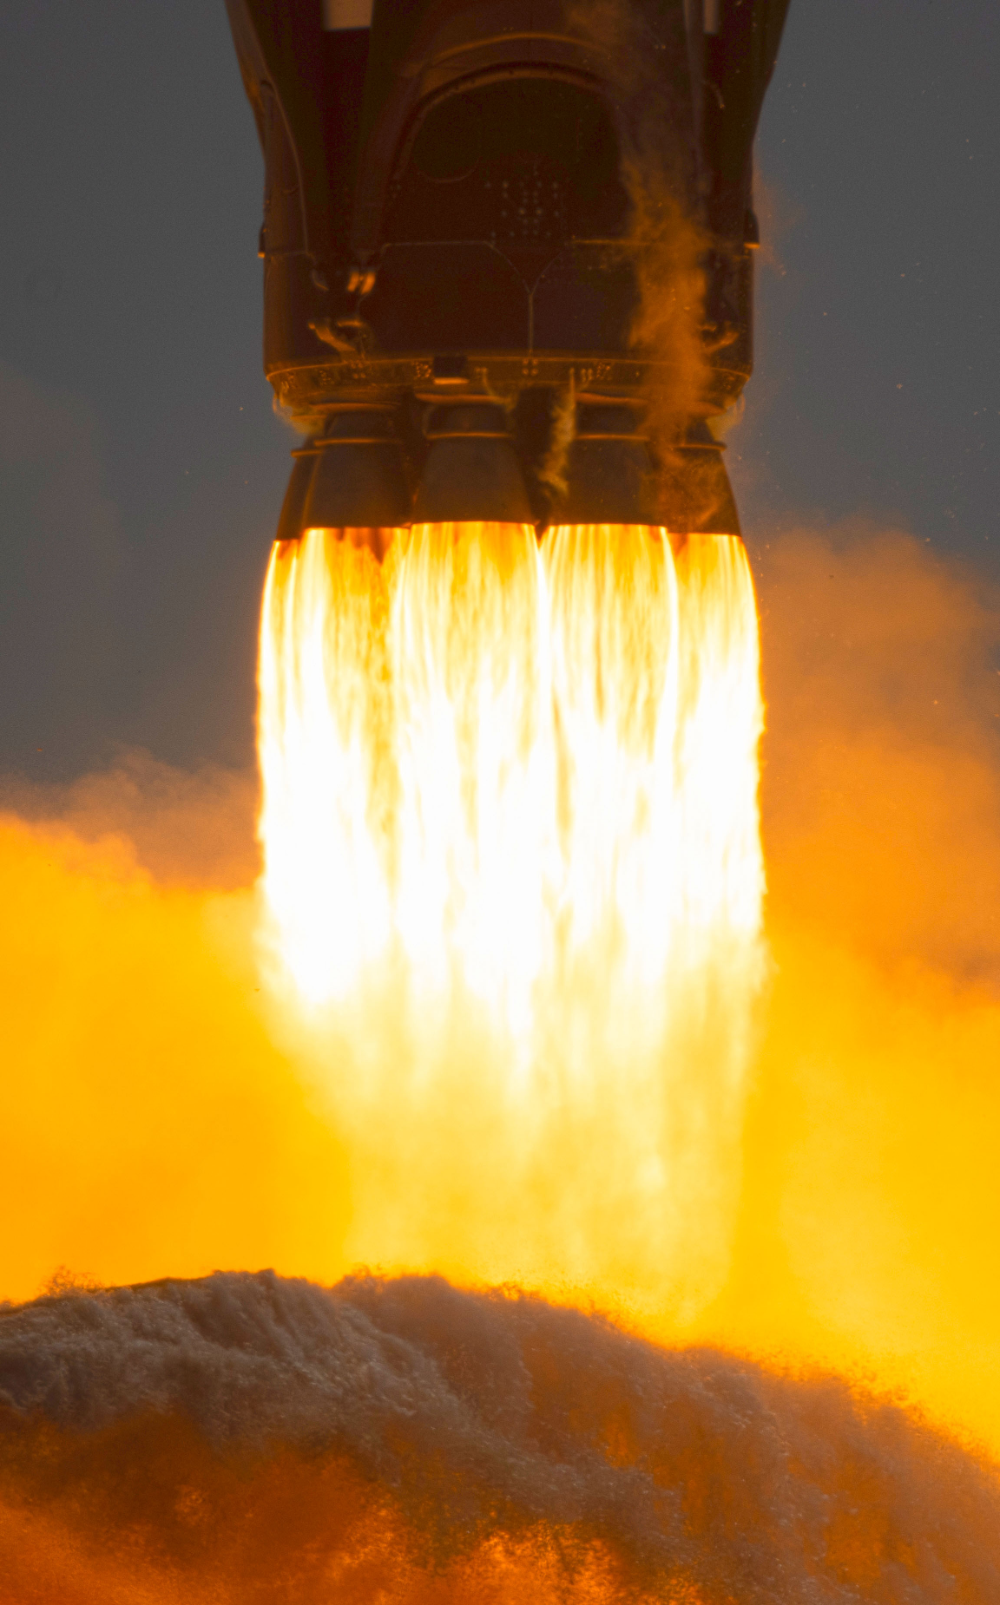 Falcon 9 Rocket On The Demo 2 Mission Spacex Wallpaper Phone Phone Wallpaper Spacex Wallpaper